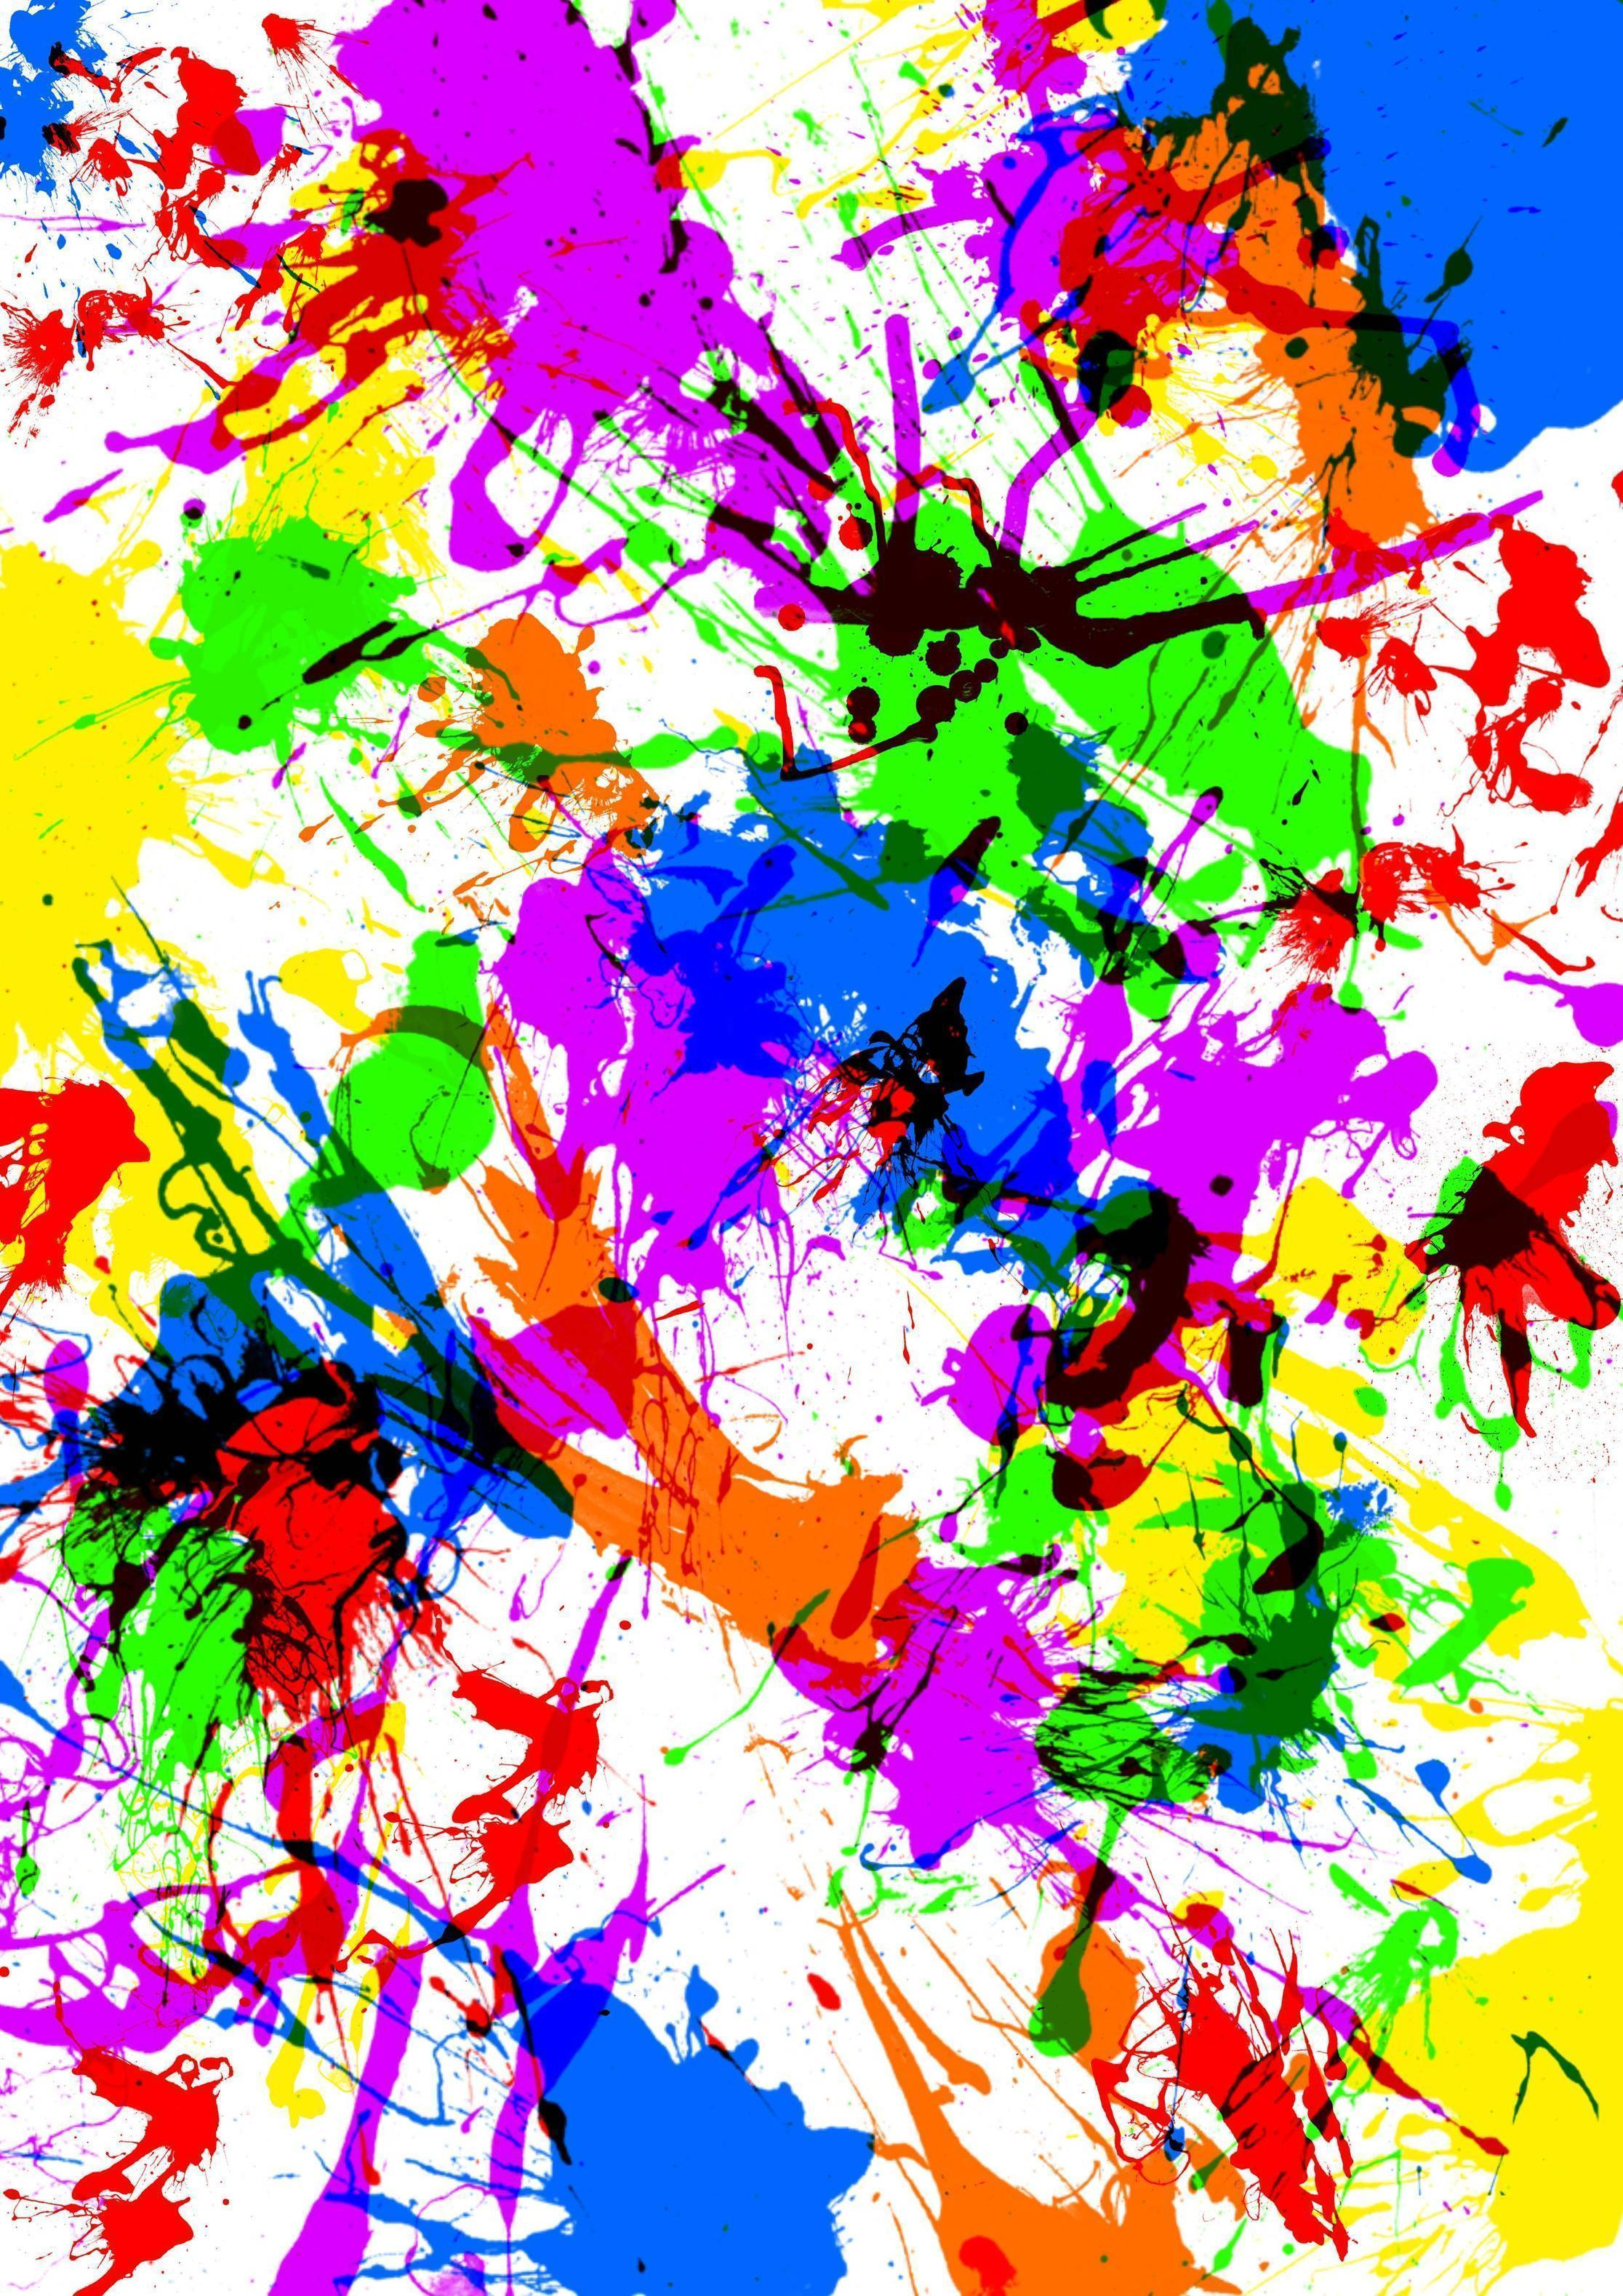 Paint Splat Wallpapers - Wallpaper Cave